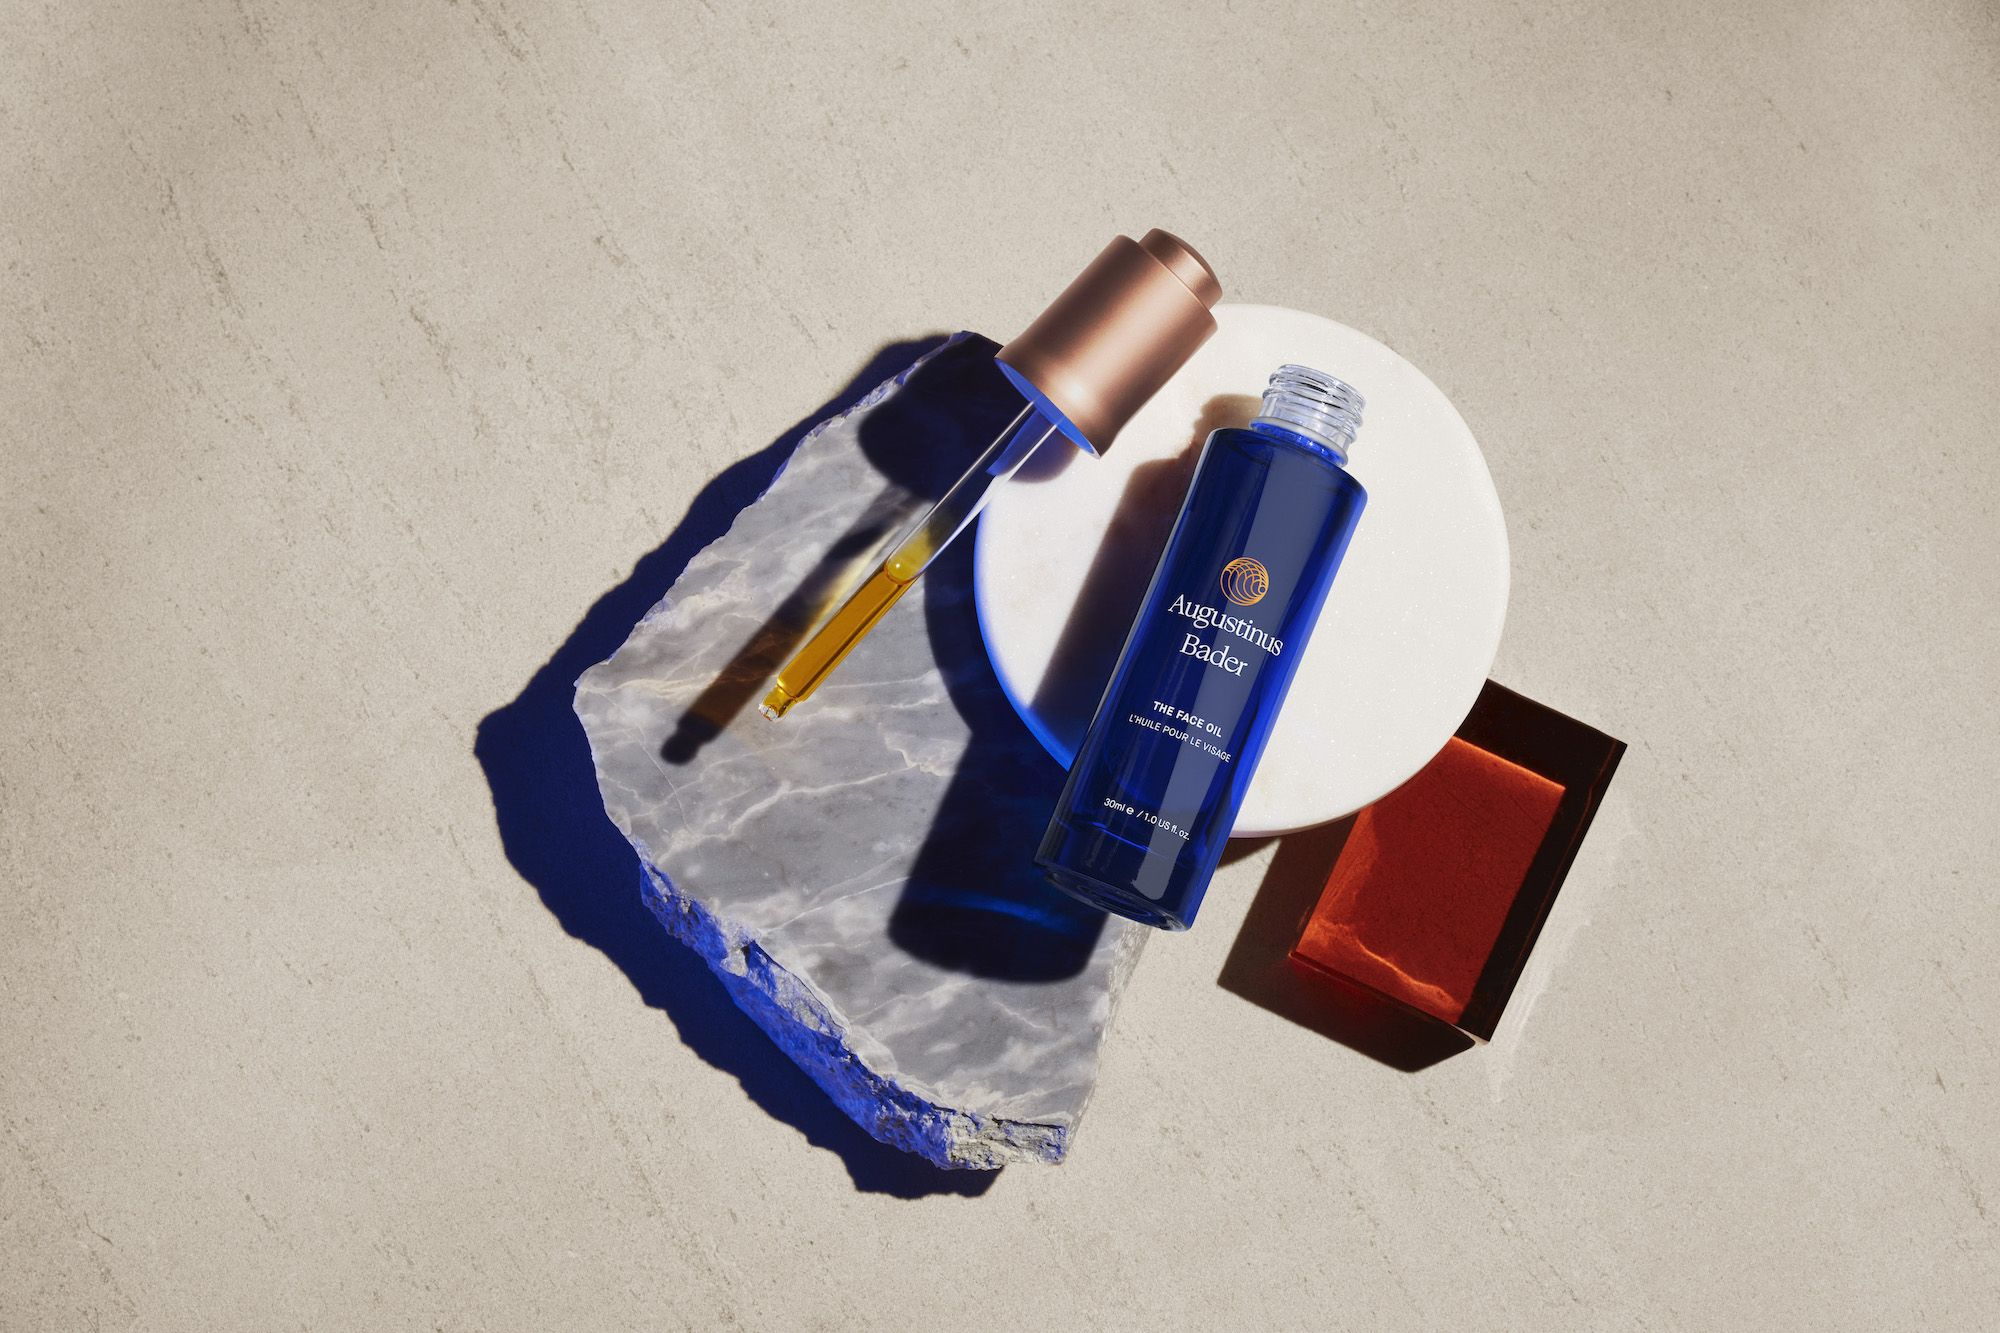 New In Beauty: Make-up And Skincare Products For November 2020